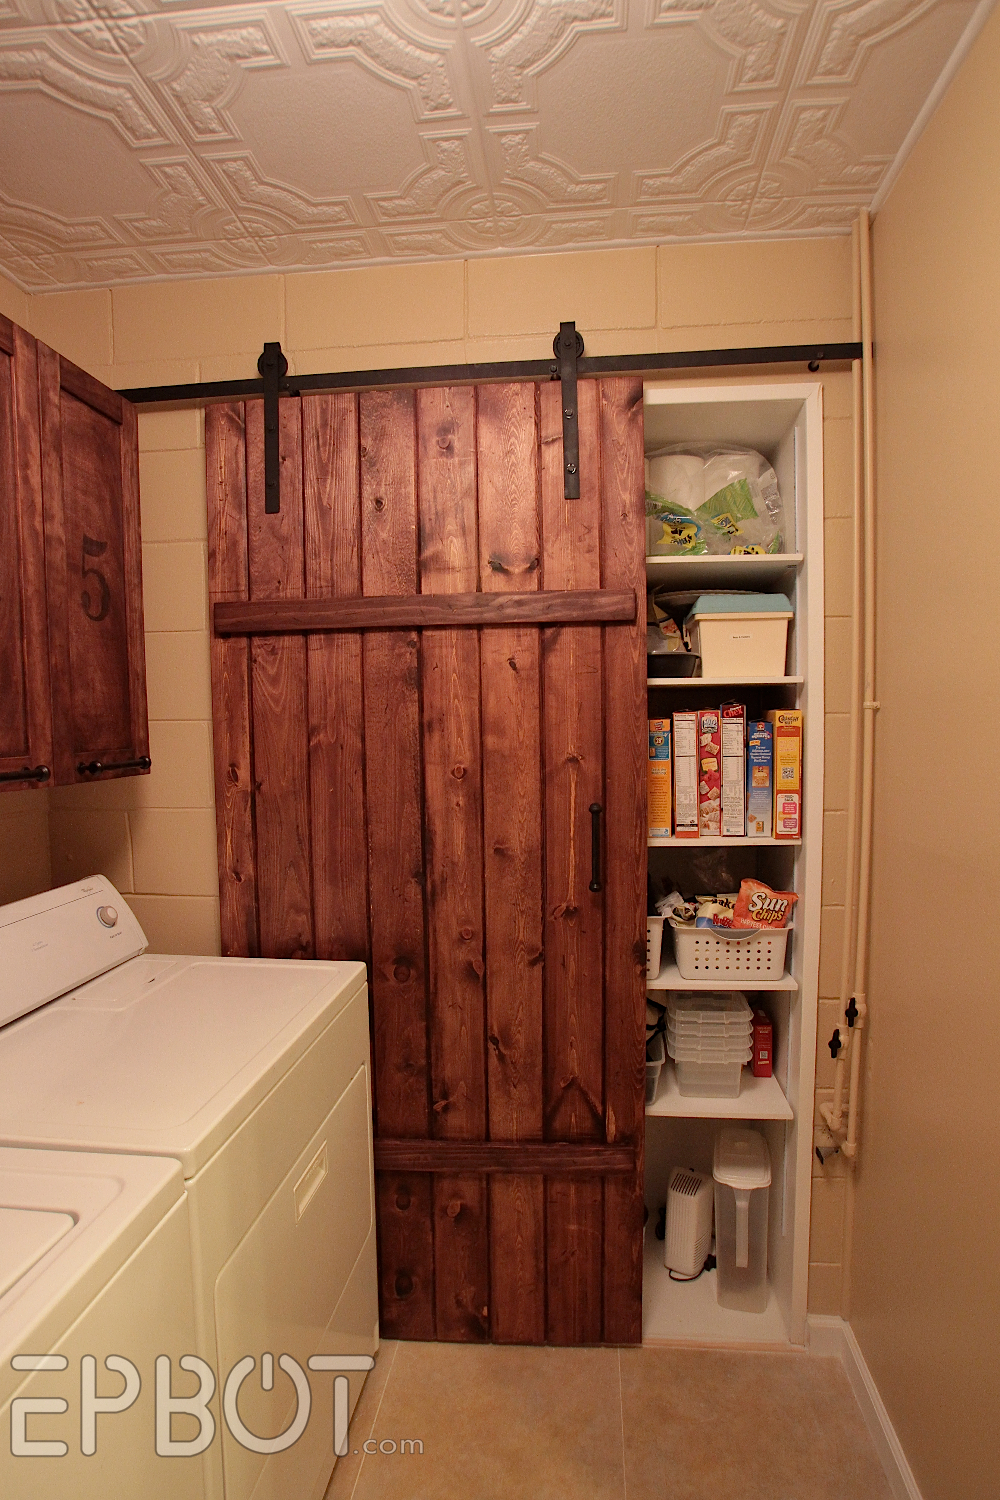 How To how to build door pics : EPBOT: Make Your Own Sliding Barn Door - For Cheap!